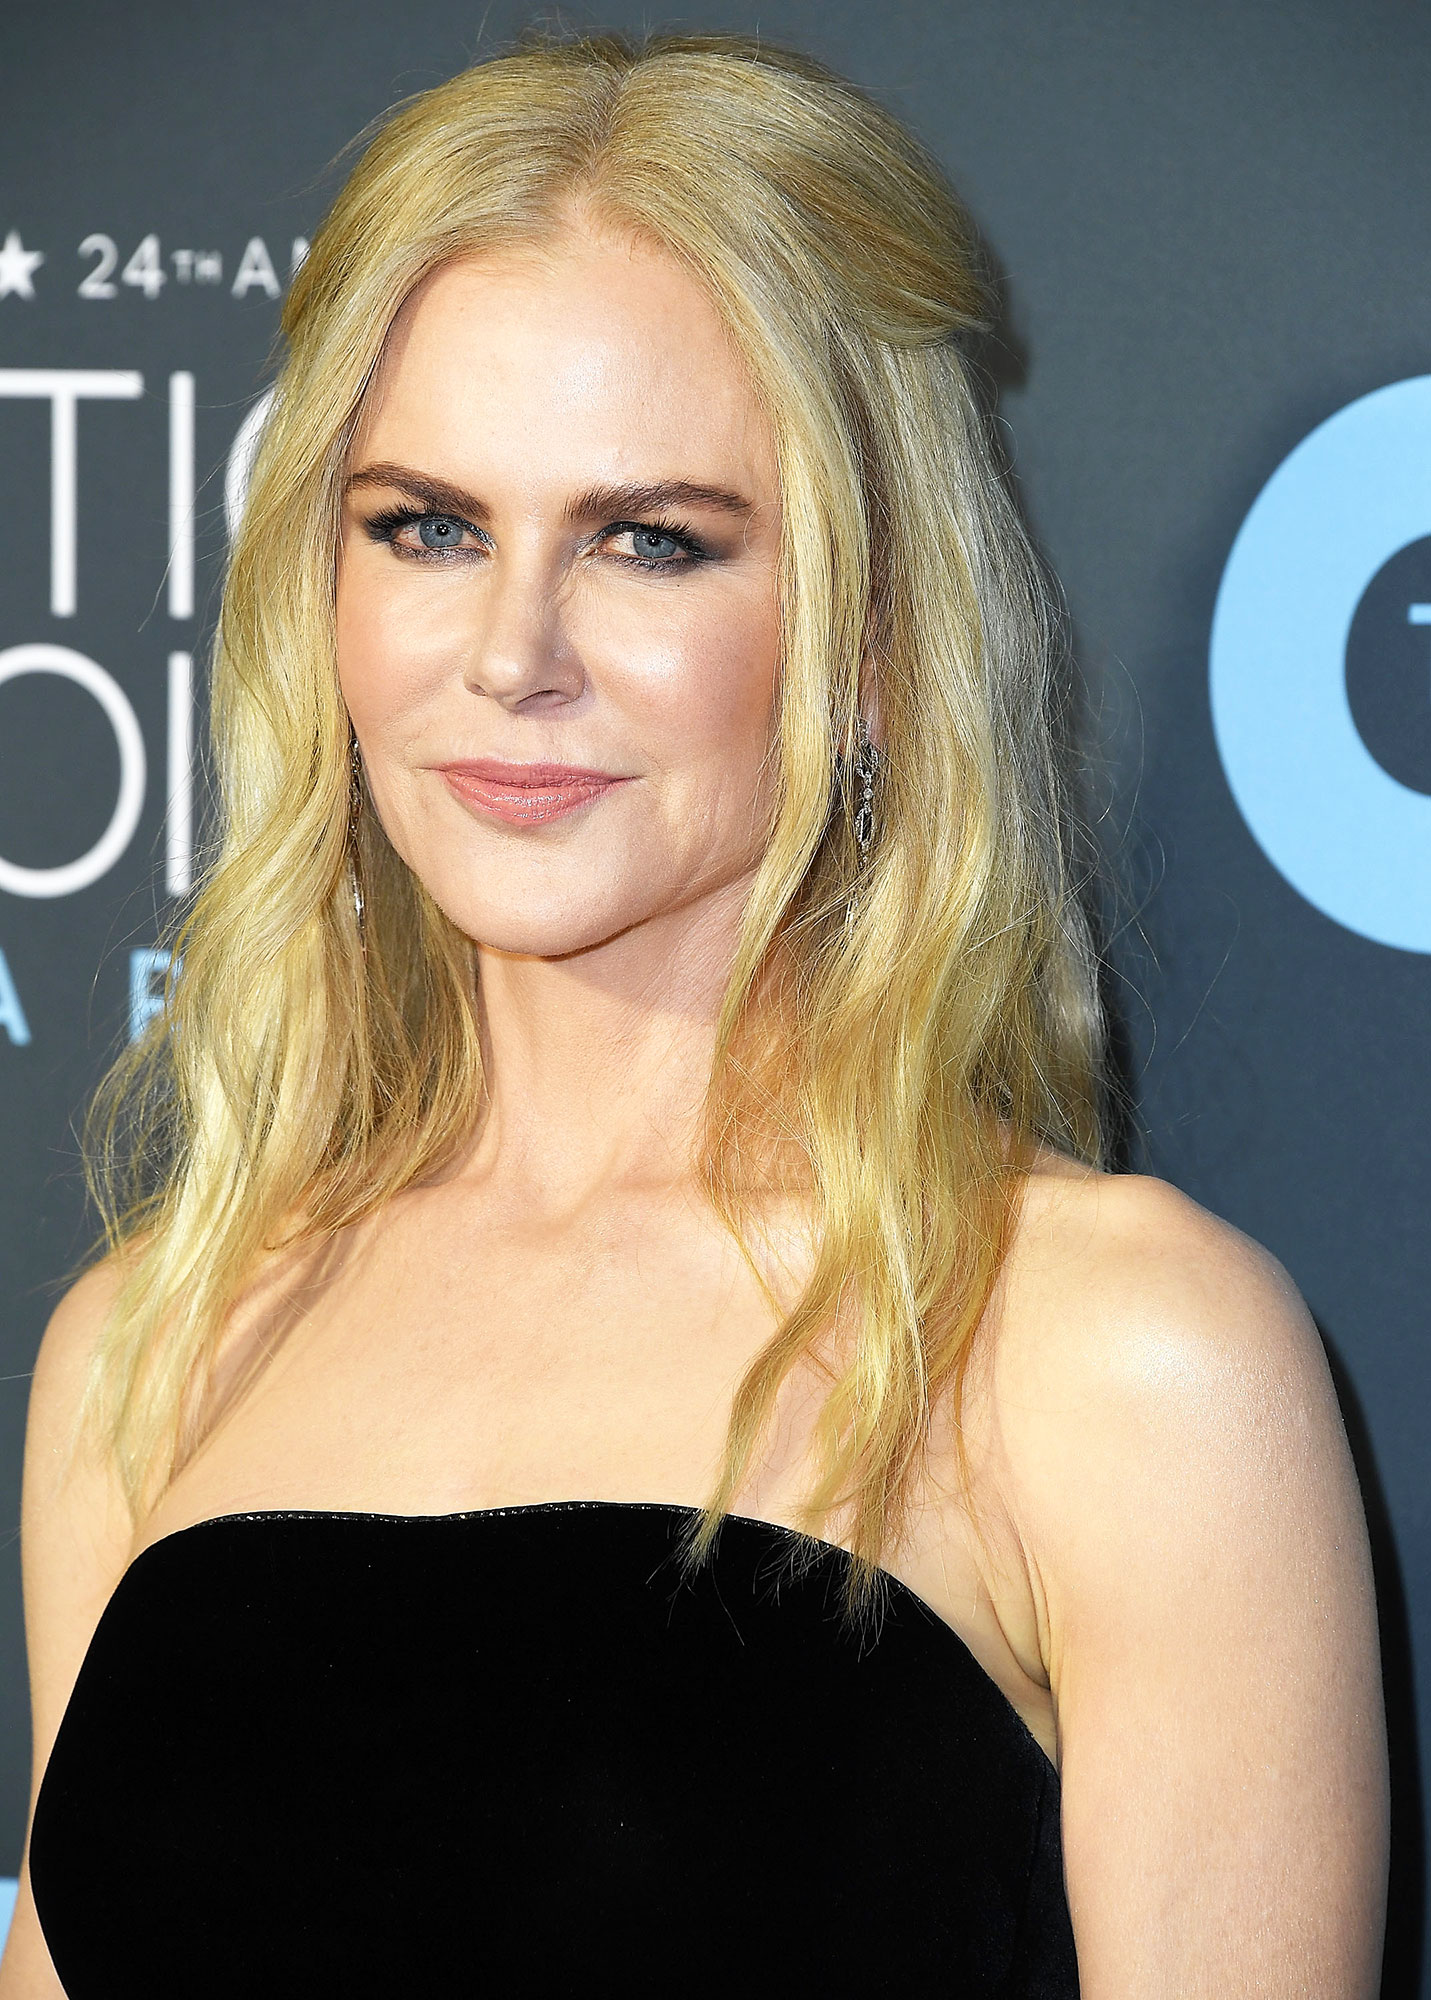 Nicole Kidman Celebs Are Here With All the Coachella Beauty Inspo You Need - For a boho-chic take on the classic half-up, half-down style, hairstylist Kylee Heath left a few face-framing tendrils out of the actress' 2019 Critics' Choice Awards 'do. On Instagram, the pro shared that she used Harry Josh Pro Tools to create the loose waves and finished things off with Oribe styling products (you can't go wrong with the Dry Texturizing Spray ).